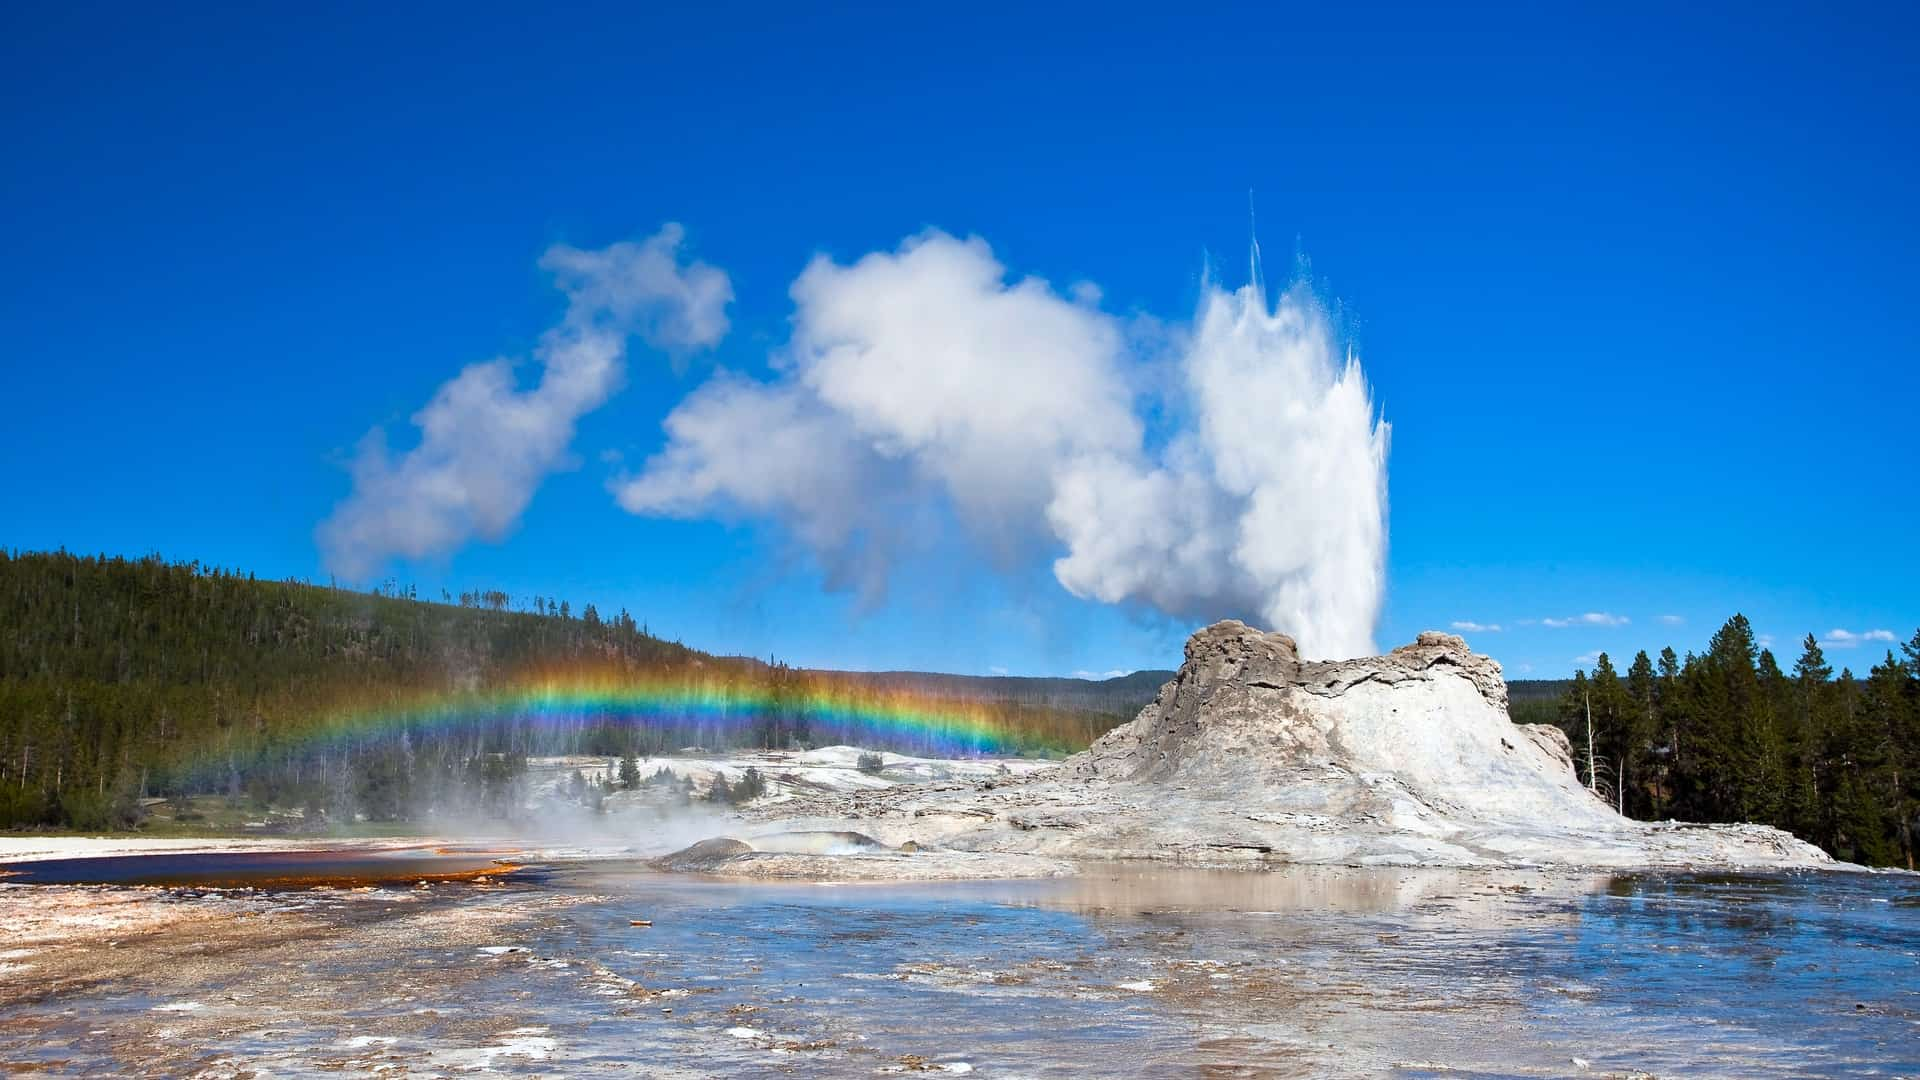 An Epic Road Trip from Chicago to Yellowstone with the Family